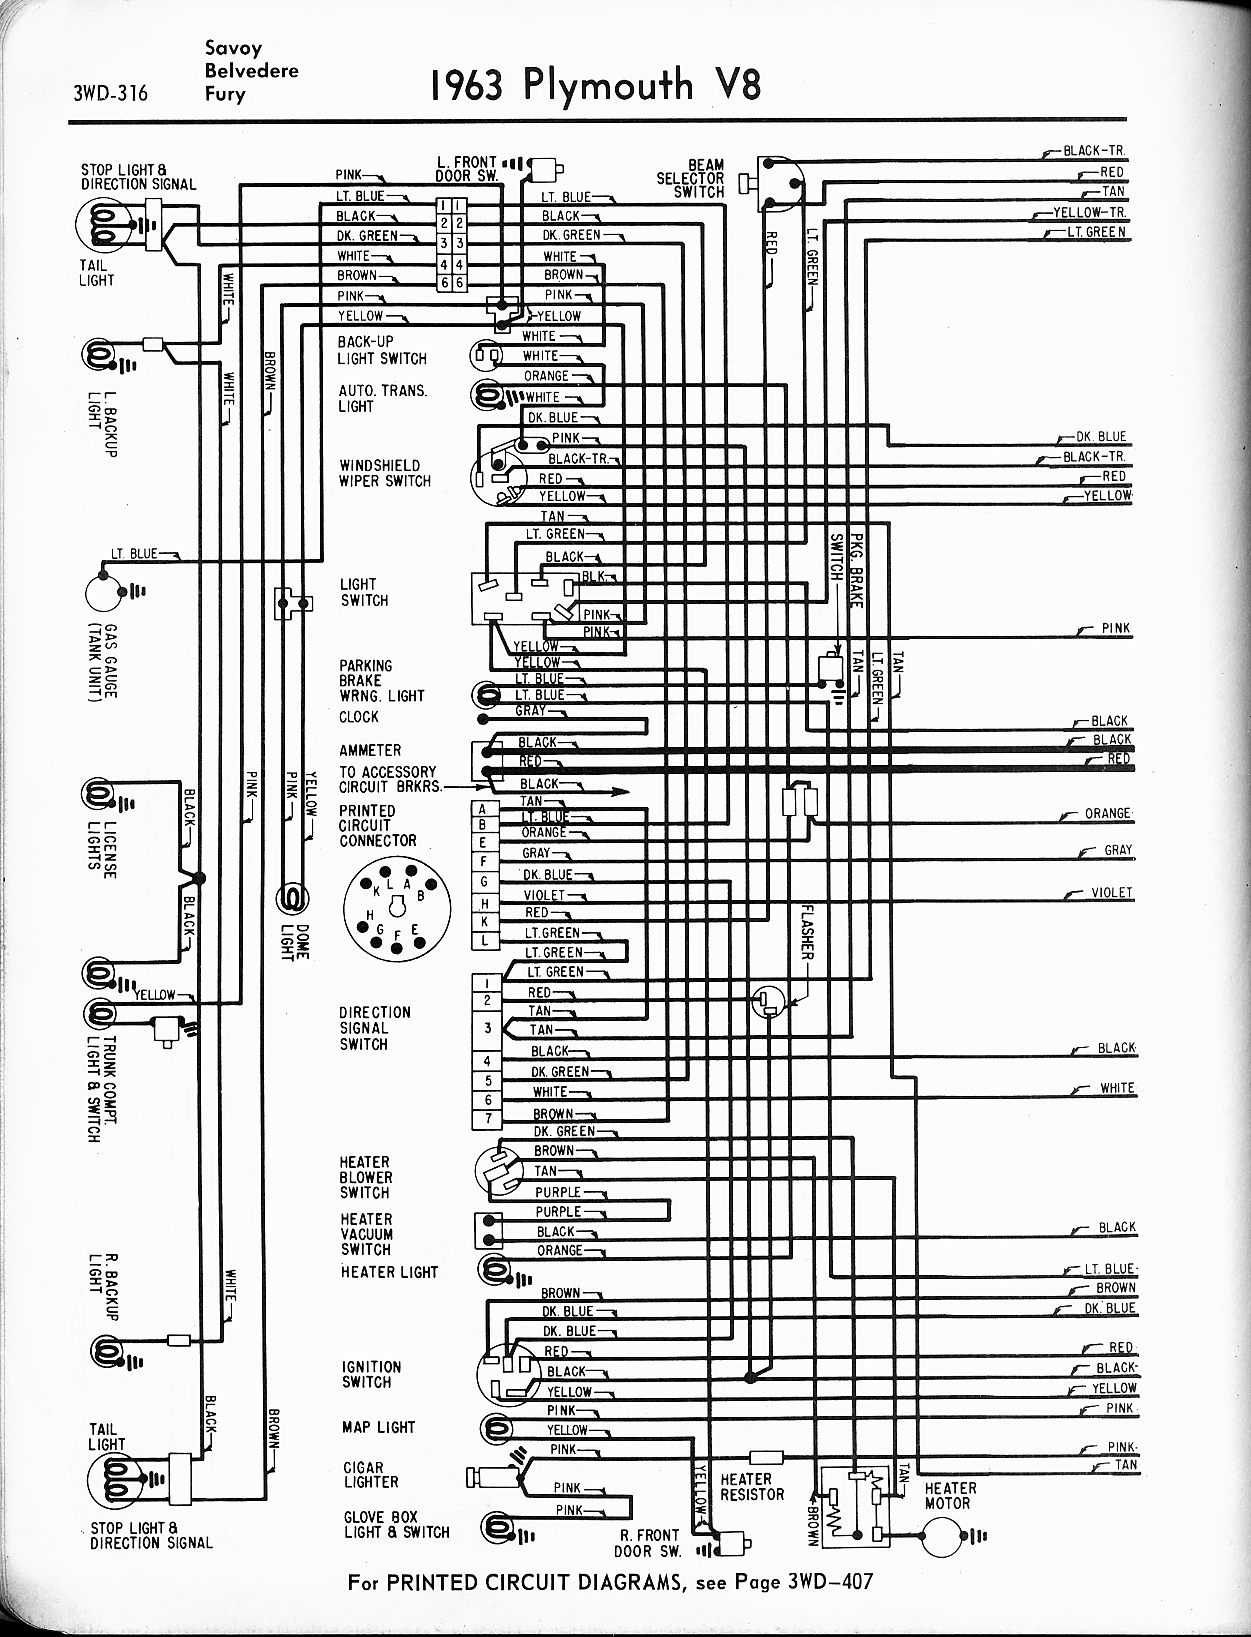 MWire5765 316 3800 series 2 wiring diagram gm ecu pinout \u2022 wiring diagrams j free pontiac wiring diagrams at suagrazia.org